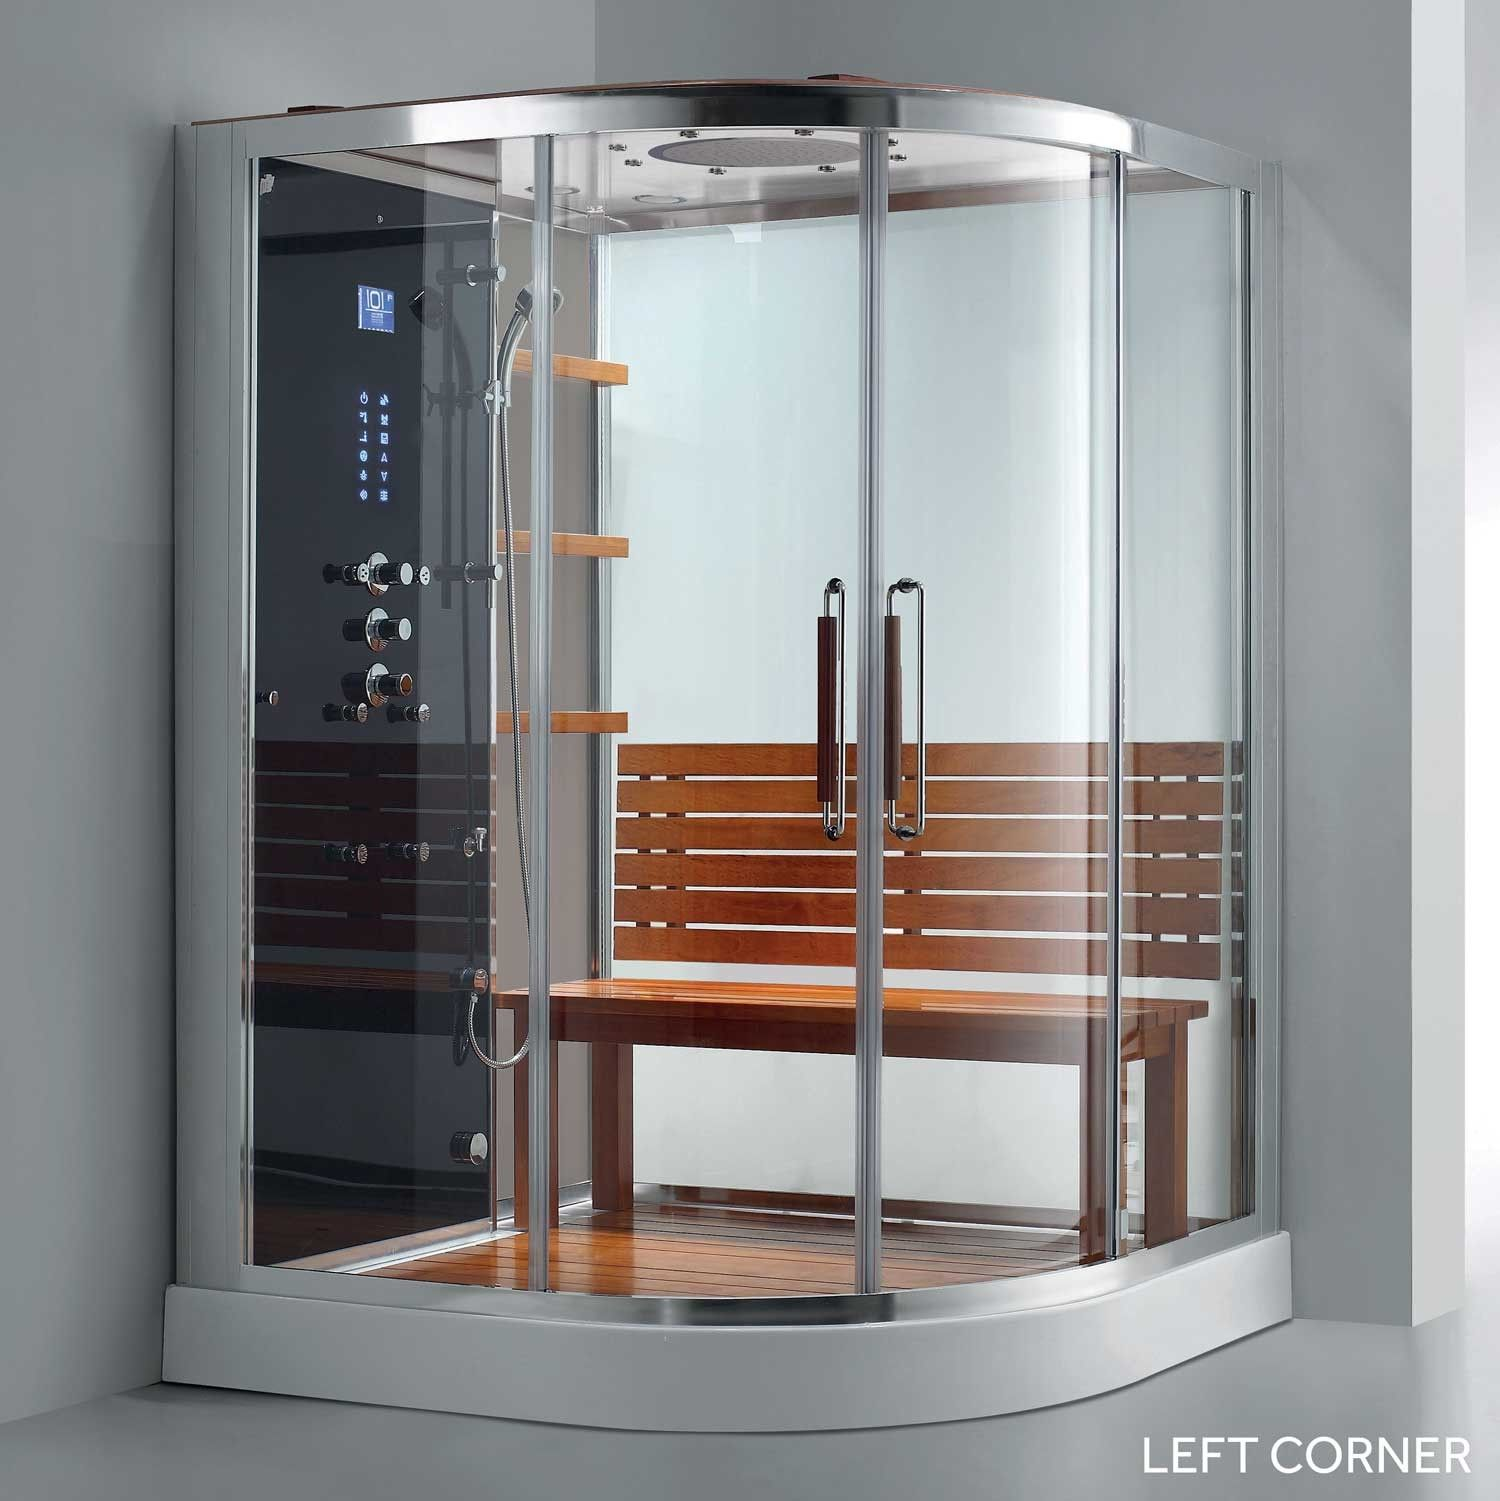 59 X 59 Frewin Corner Steam Shower Enclosure Con Imagenes